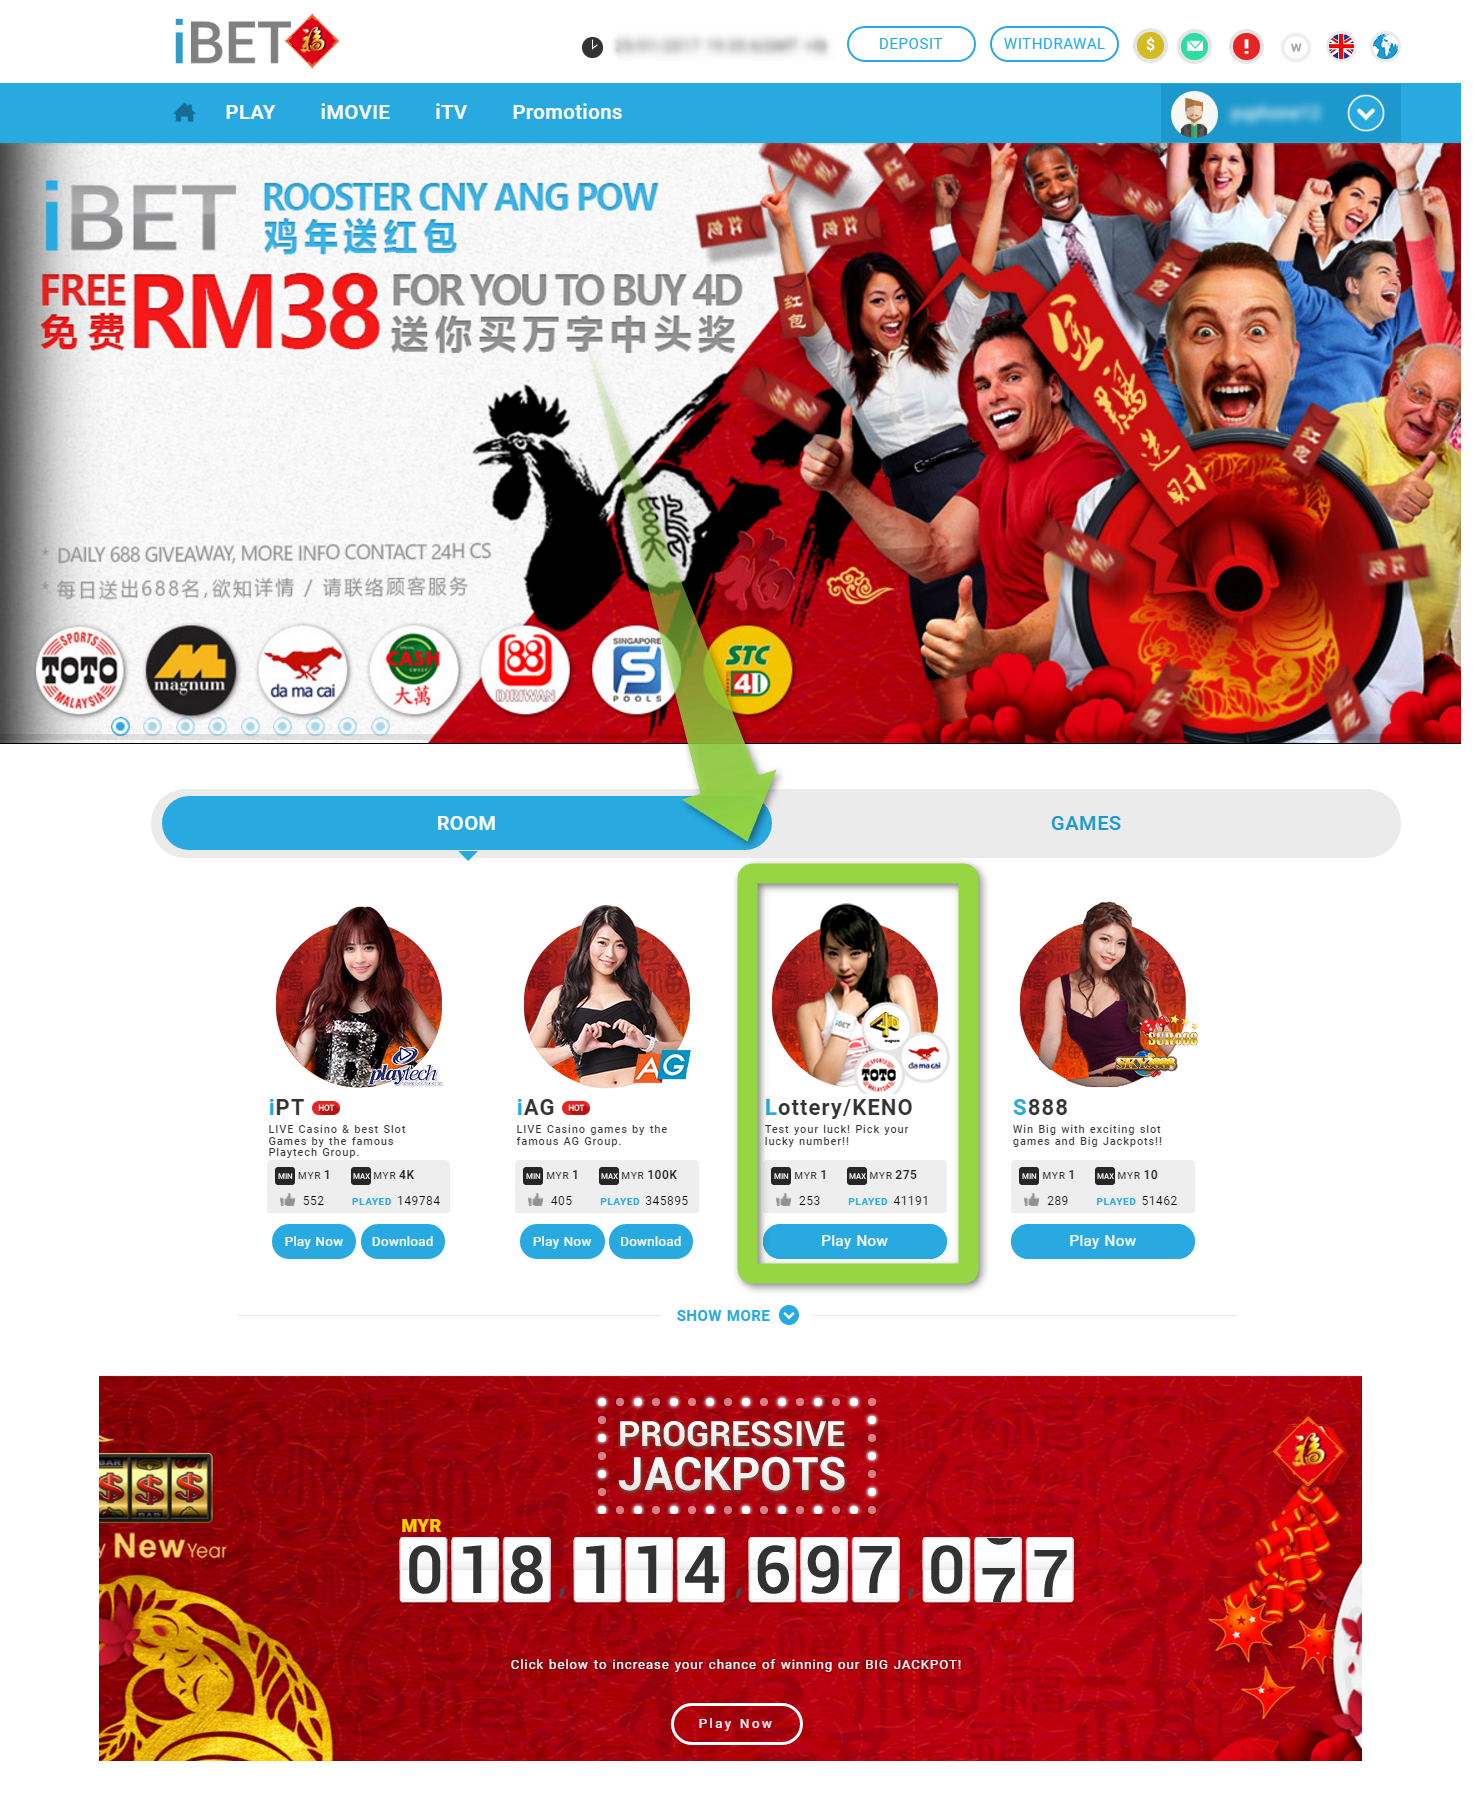 Logined to your Free RM38 activity account, select iLottery Game room, you may begin bets on 4D to win Big Prizes